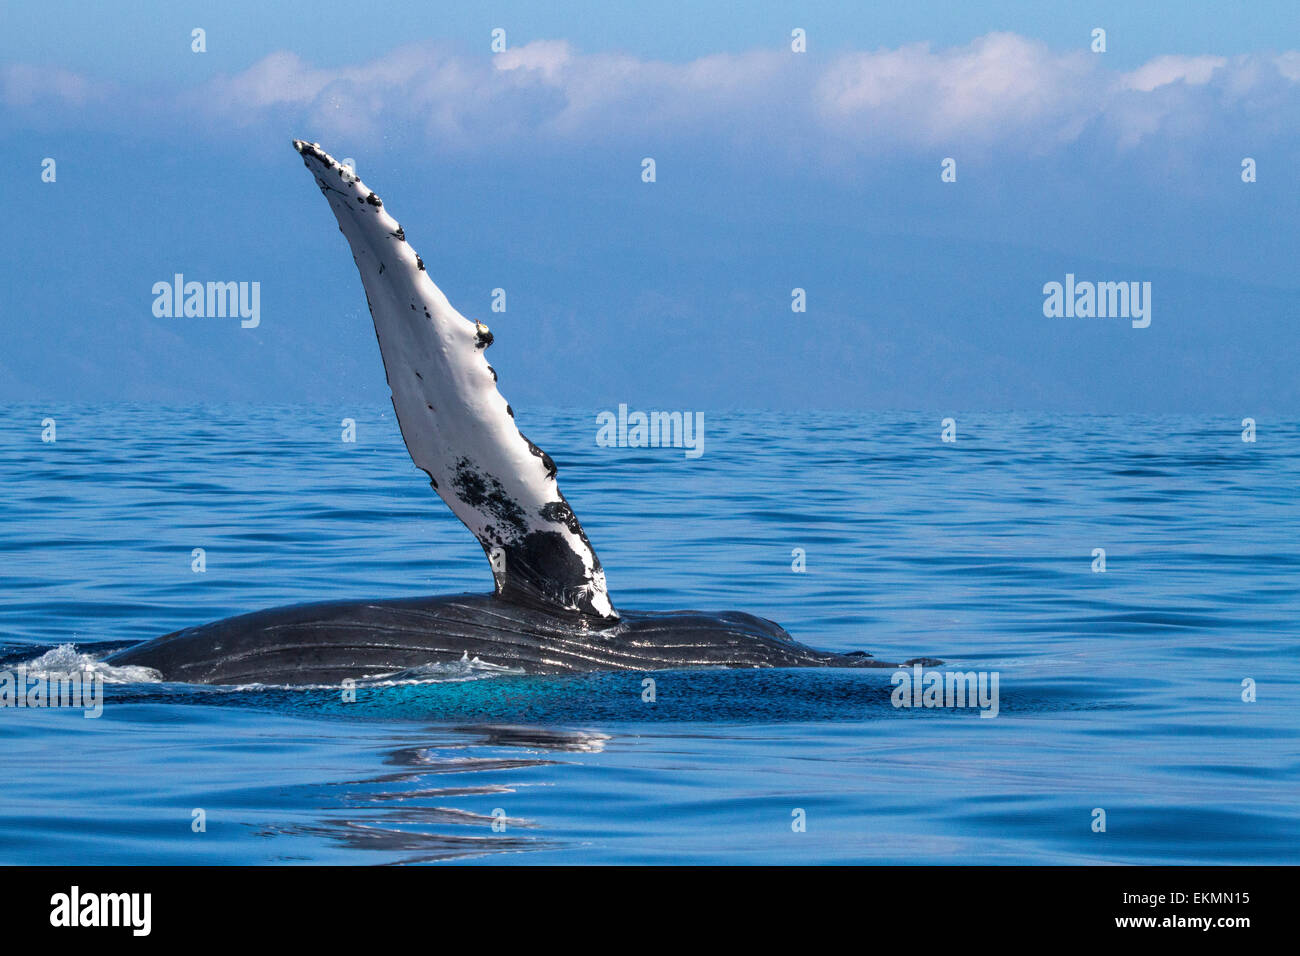 Humpback whale in the waters of Lahaina on Maui. - Stock Image